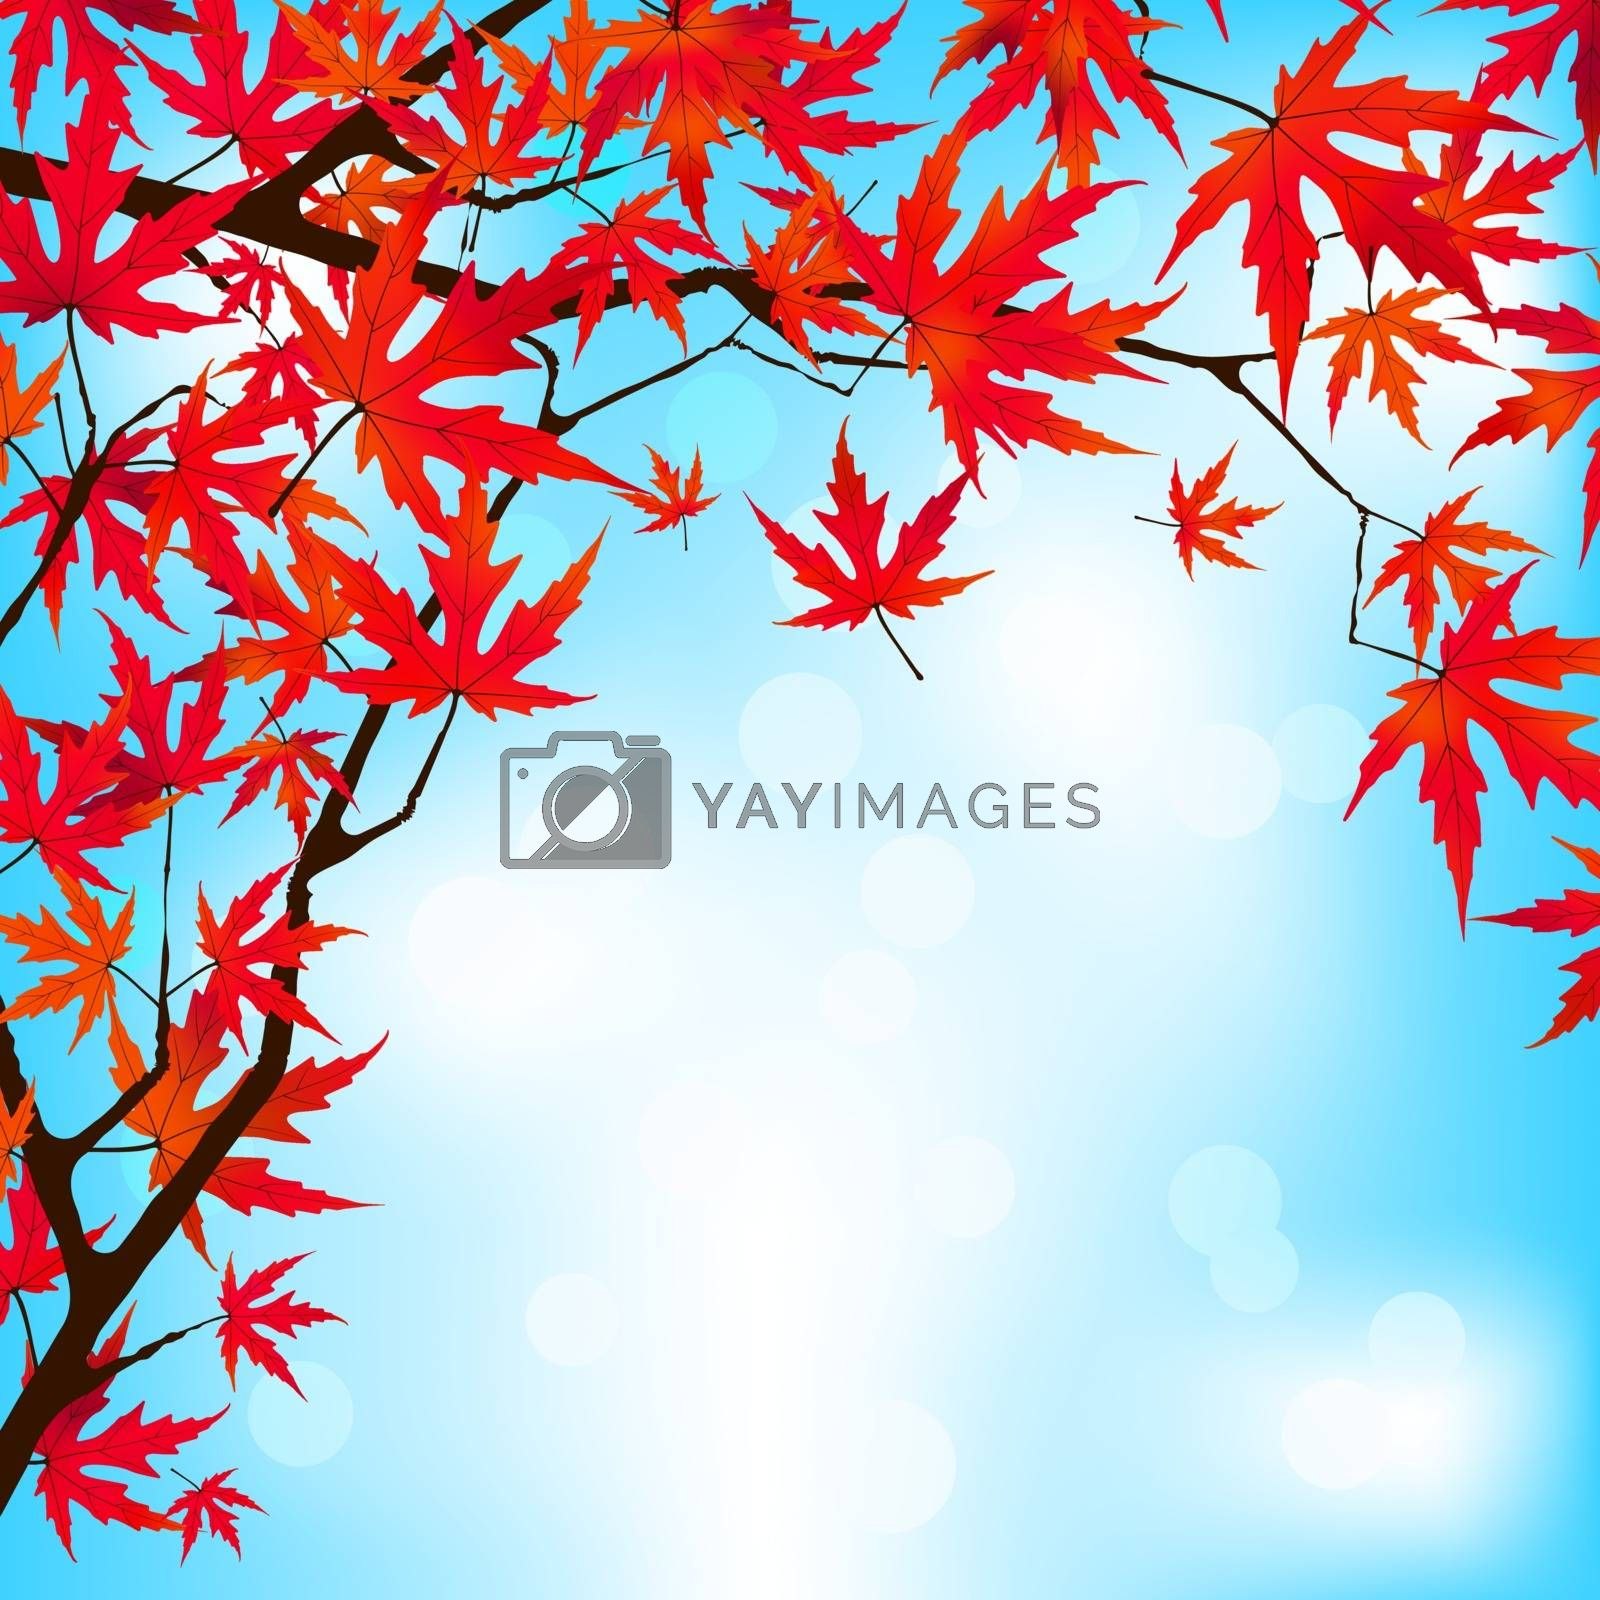 Red Japanese Maple leaves against blue sky. EPS 8 vector file included